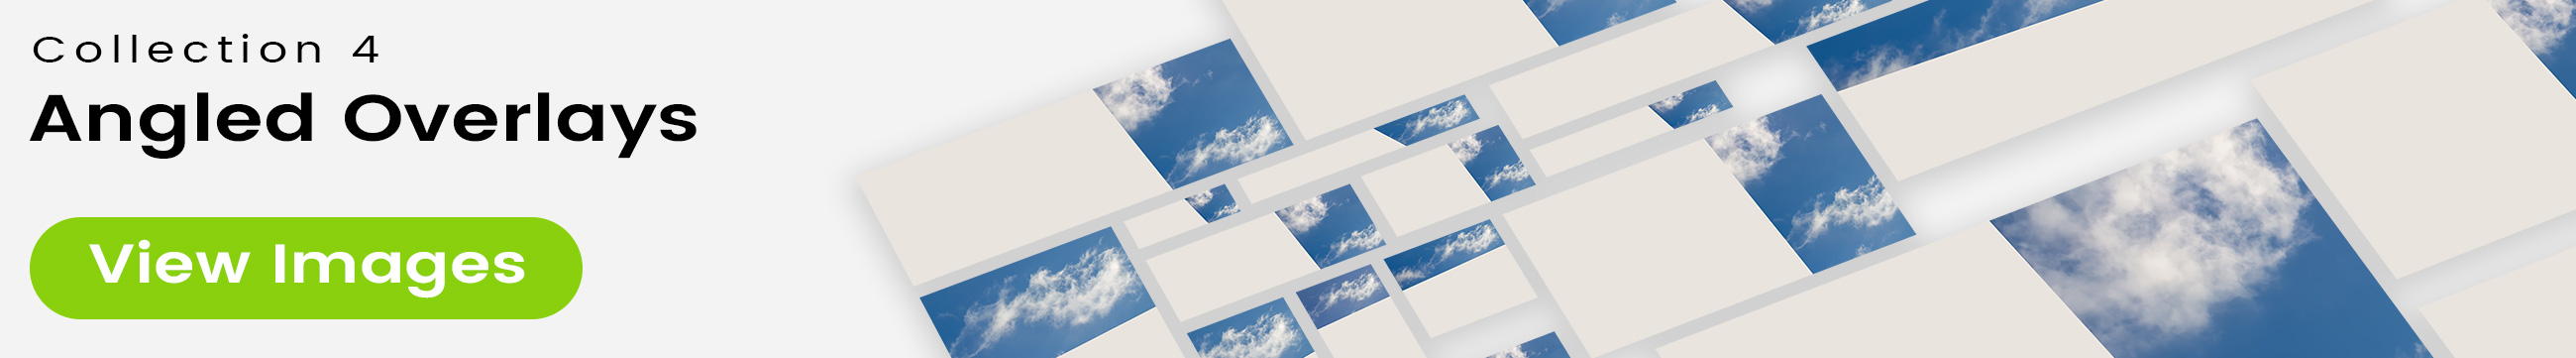 See 25 bonus images included with clouds stock image 9471. Collection 4 of 4 features an angled overlay design customized with a color that complements each photo.